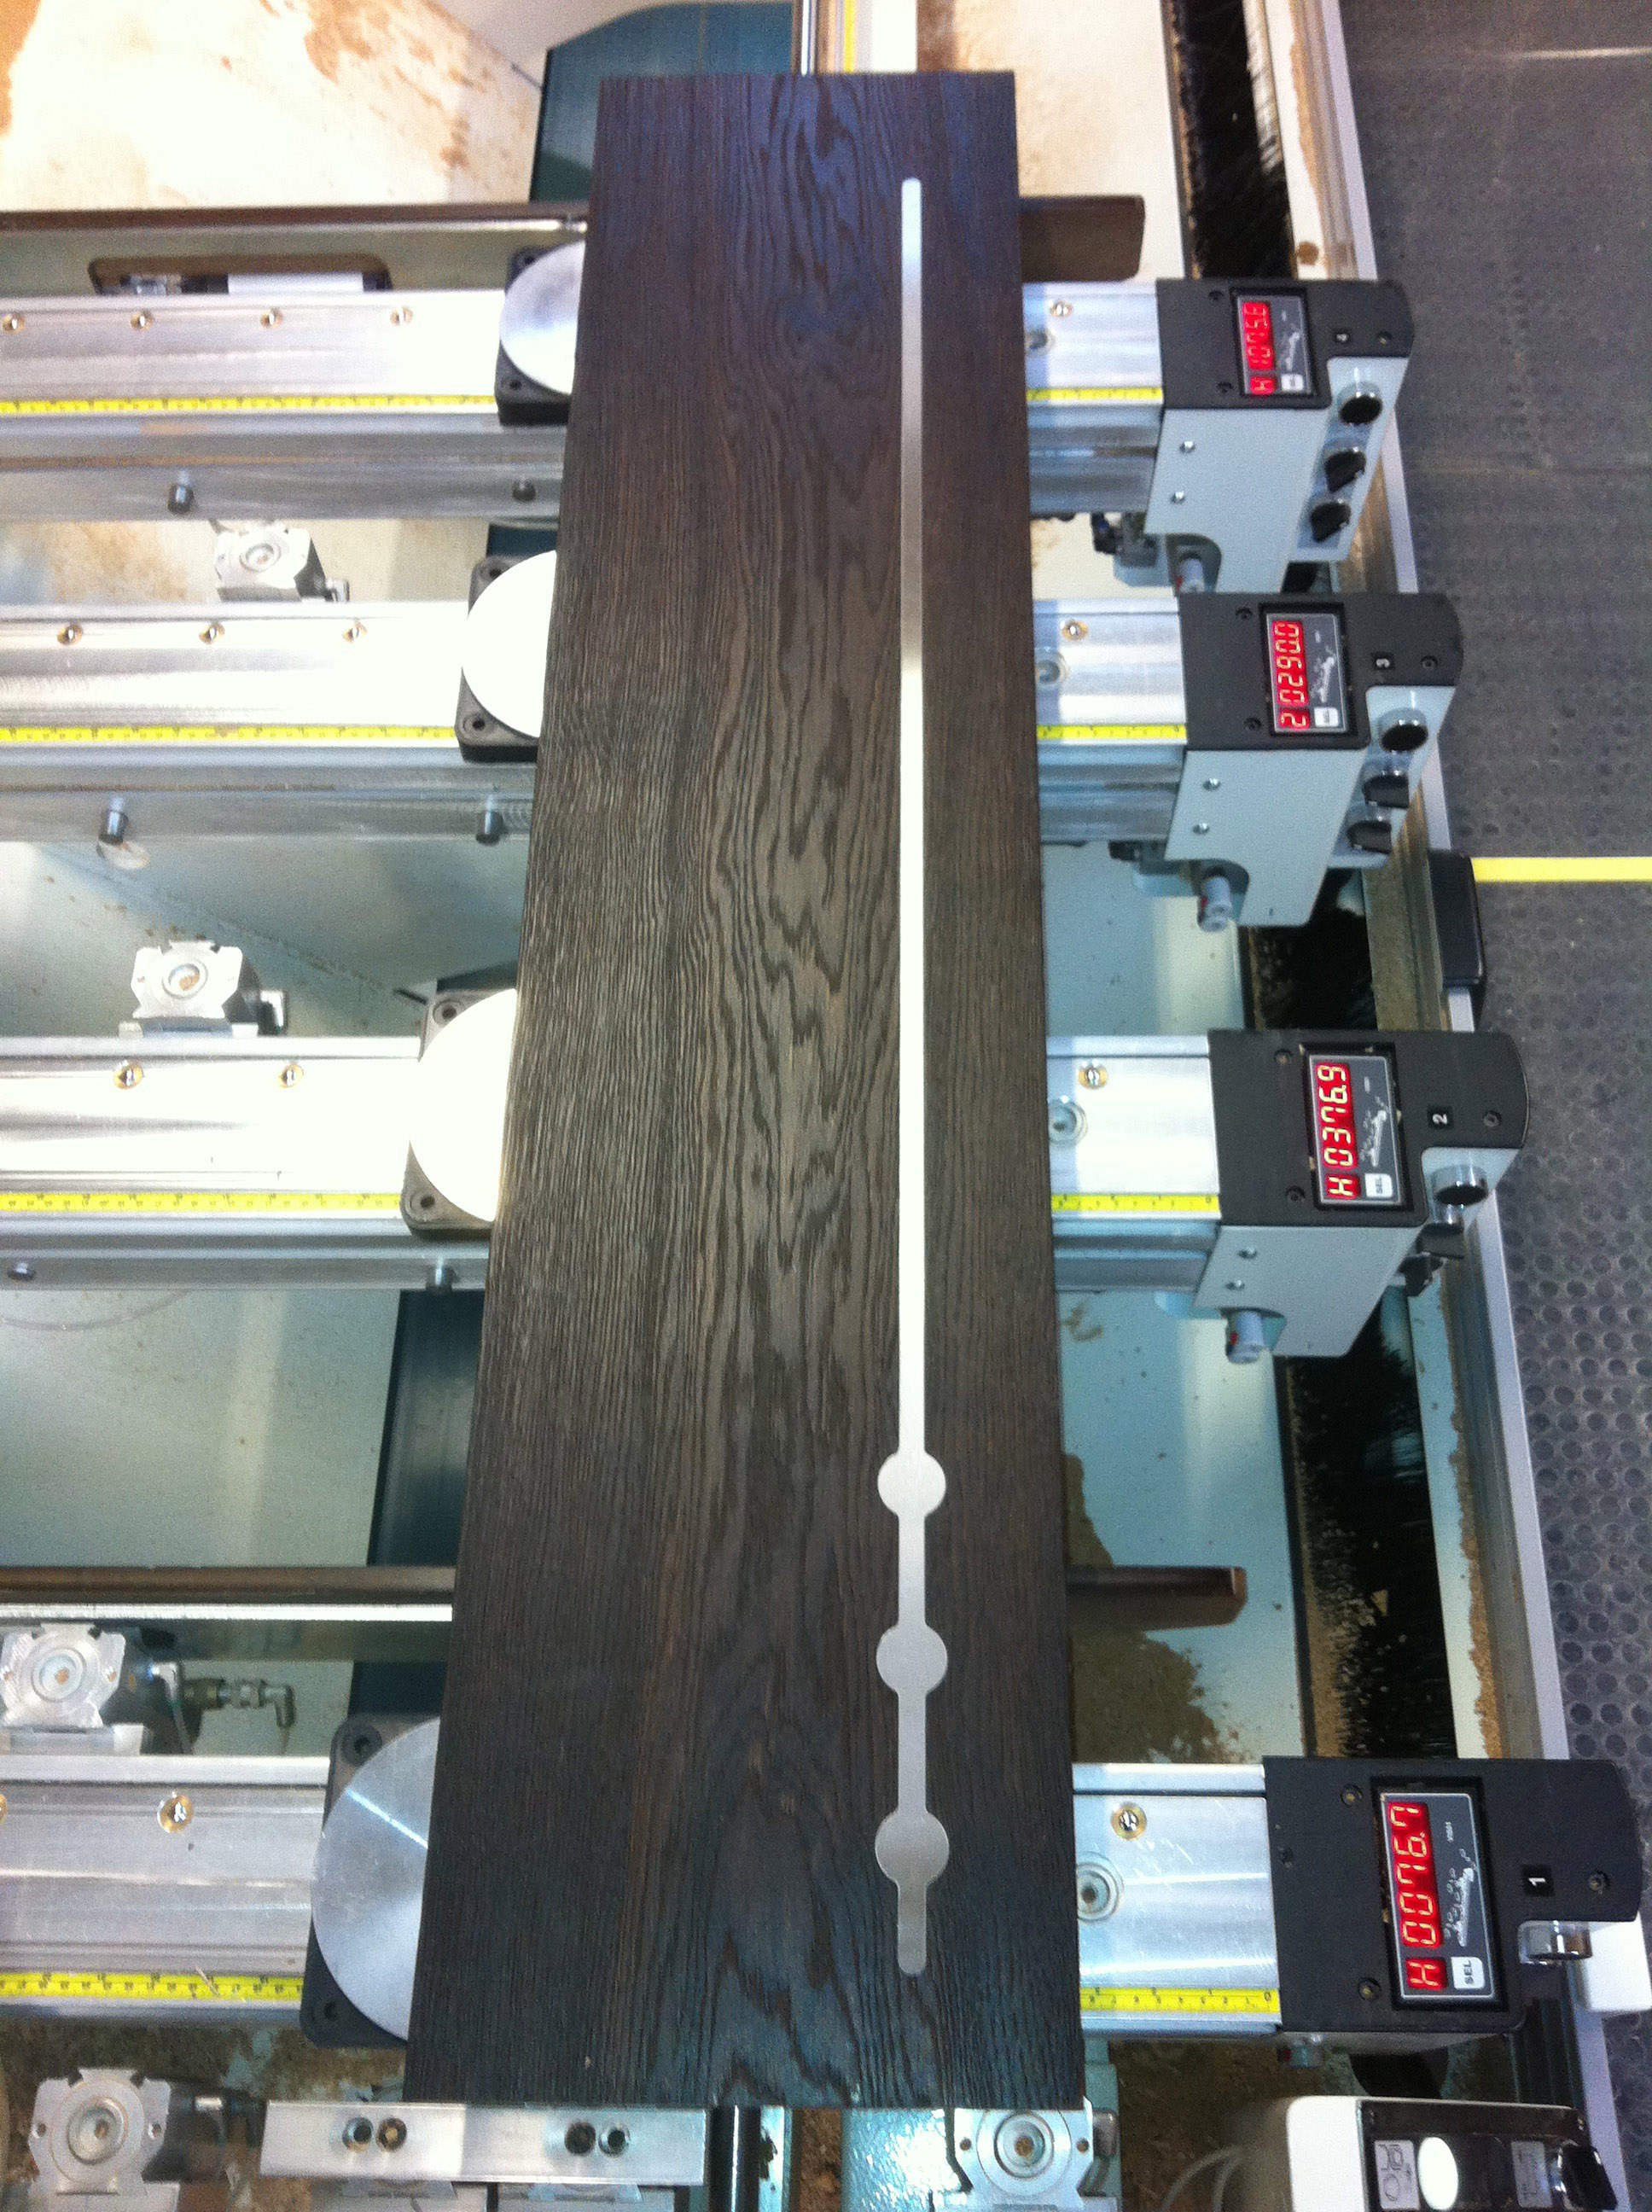 Cavendish Joinery Press Releases Metal Inlay Oak Stair